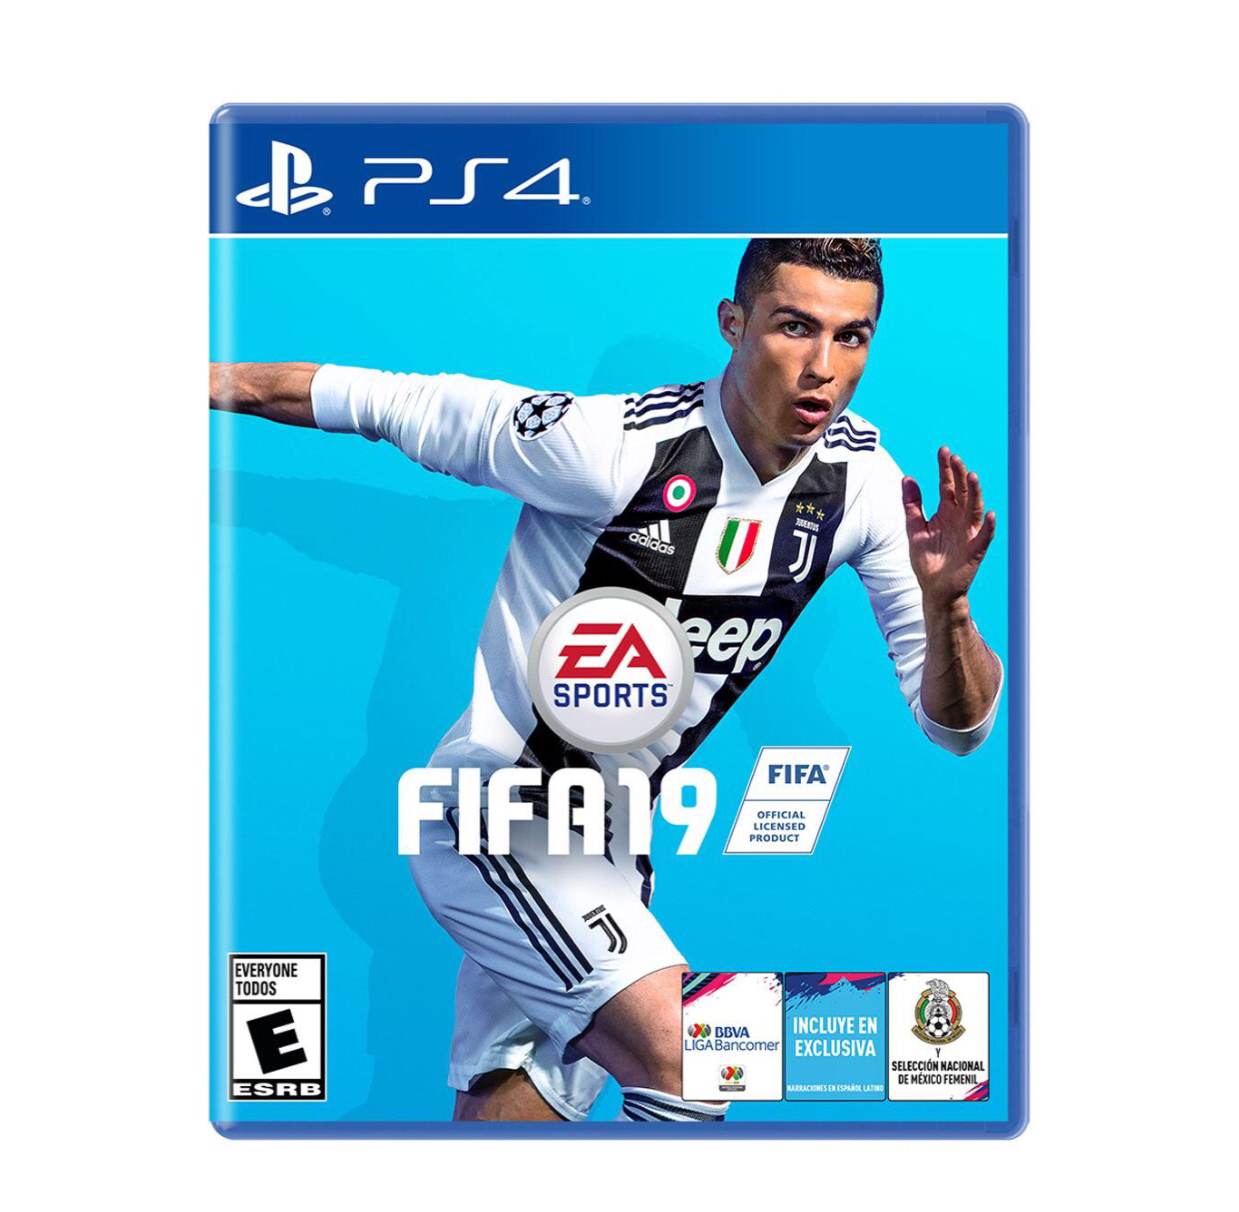 FIFA19 Video Game for PlayStation 4